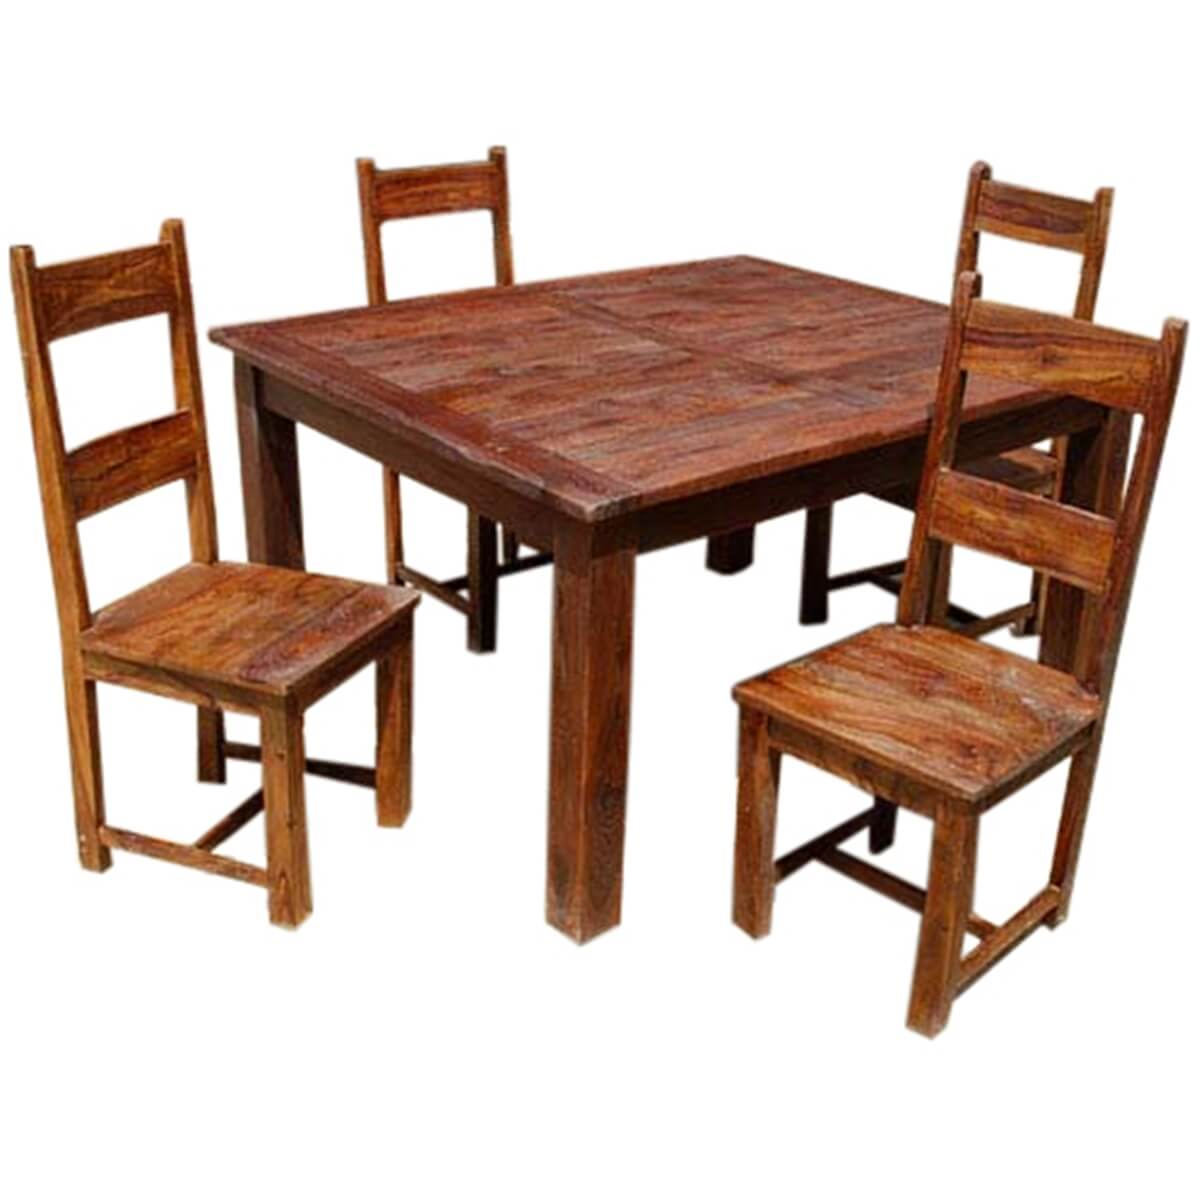 Rustic Wood Dining Room Table: Rustic Solid Wood Appalachian Dining Room Table & Chair Set